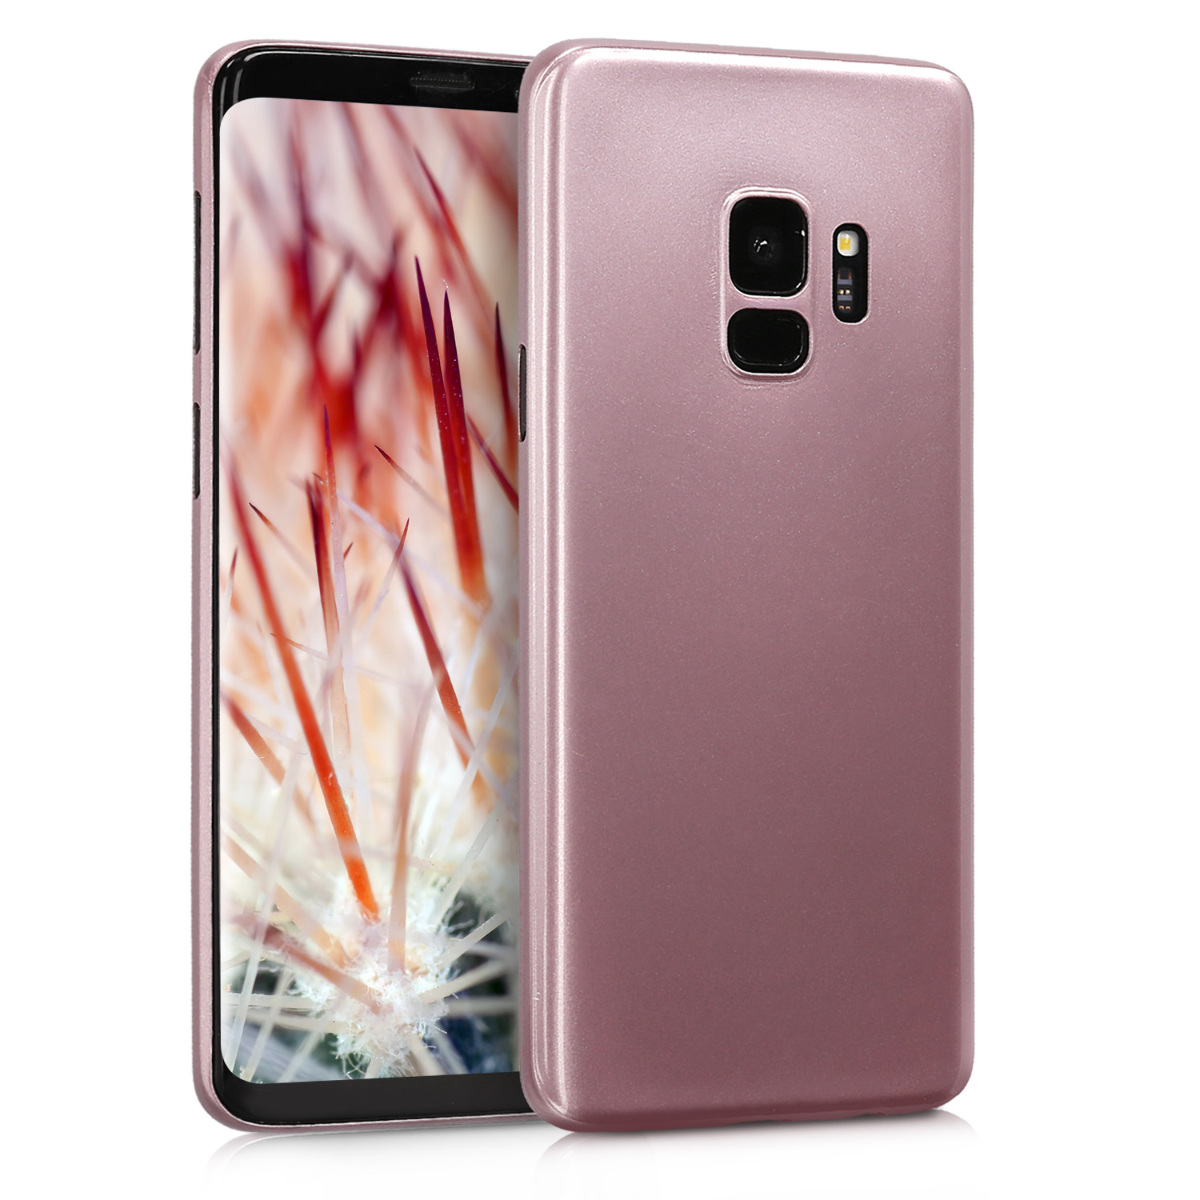 Pouzdro pro Samsung Galaxy S9 - Ultra Slim Protective Mobile Cell Phone Cover - Rose Gold High Gloss